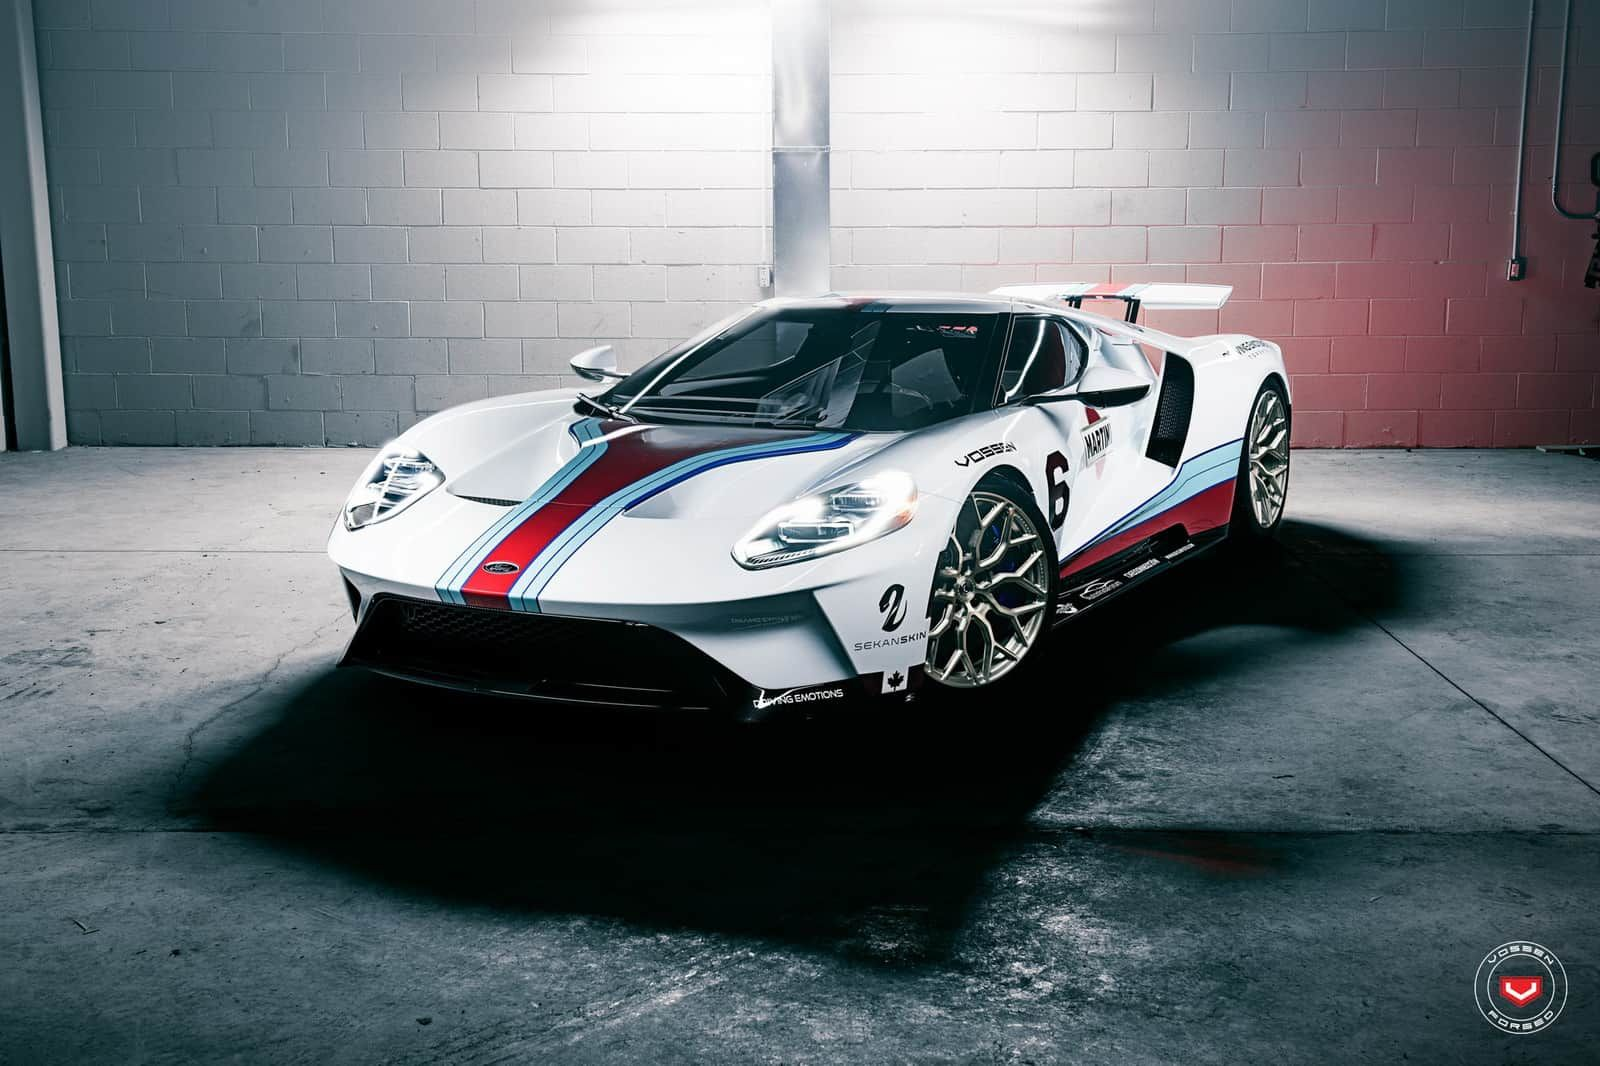 This Ford Gt Takes The Martini Livery To The Next Level Ford Gt